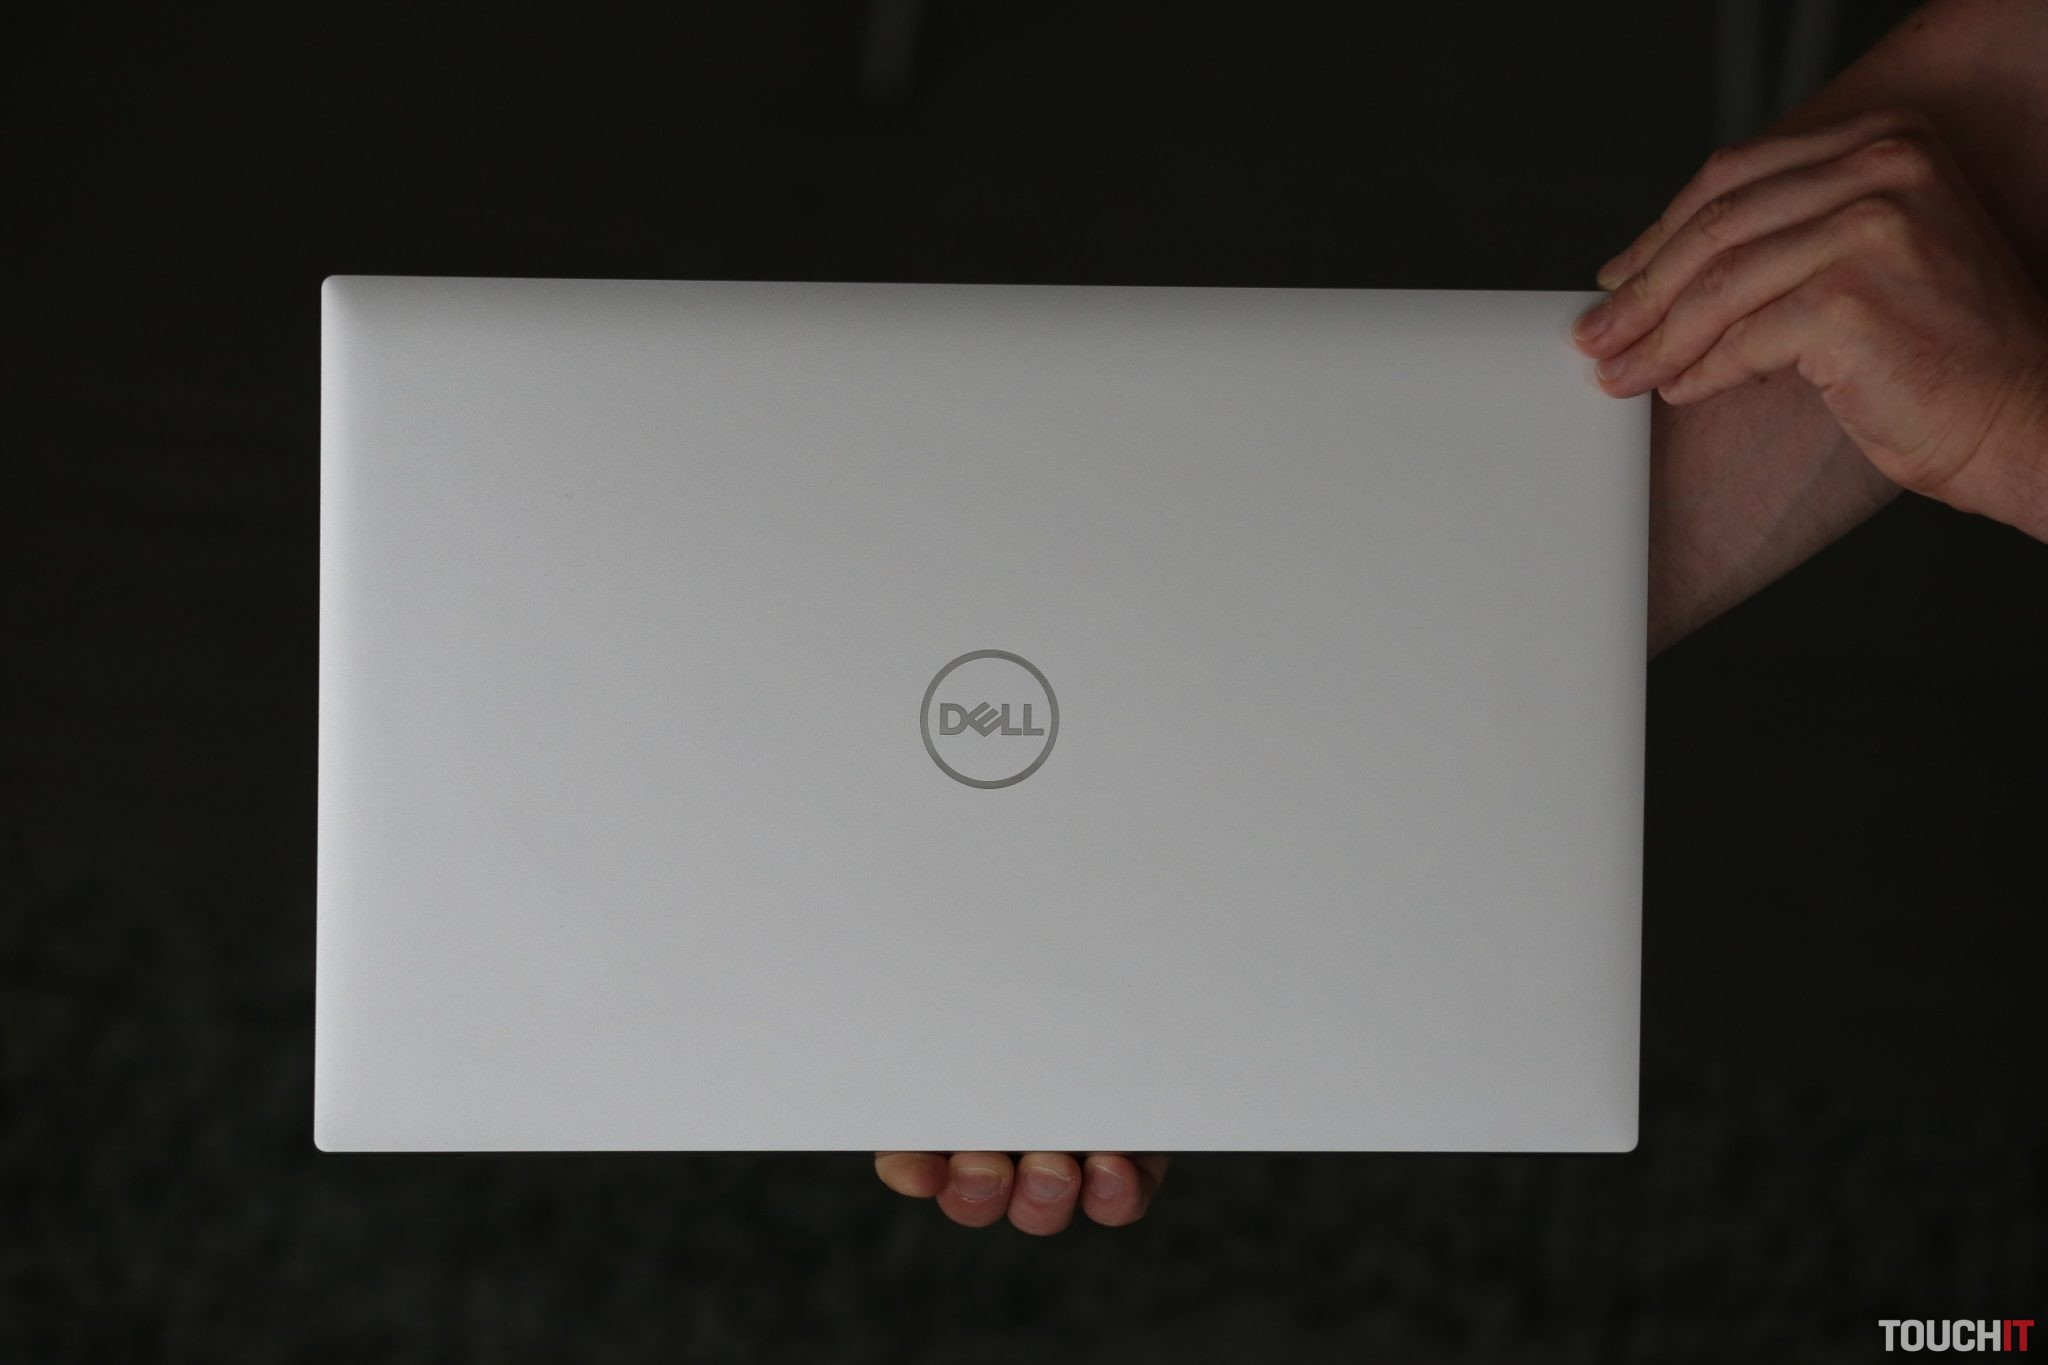 dell xps 17